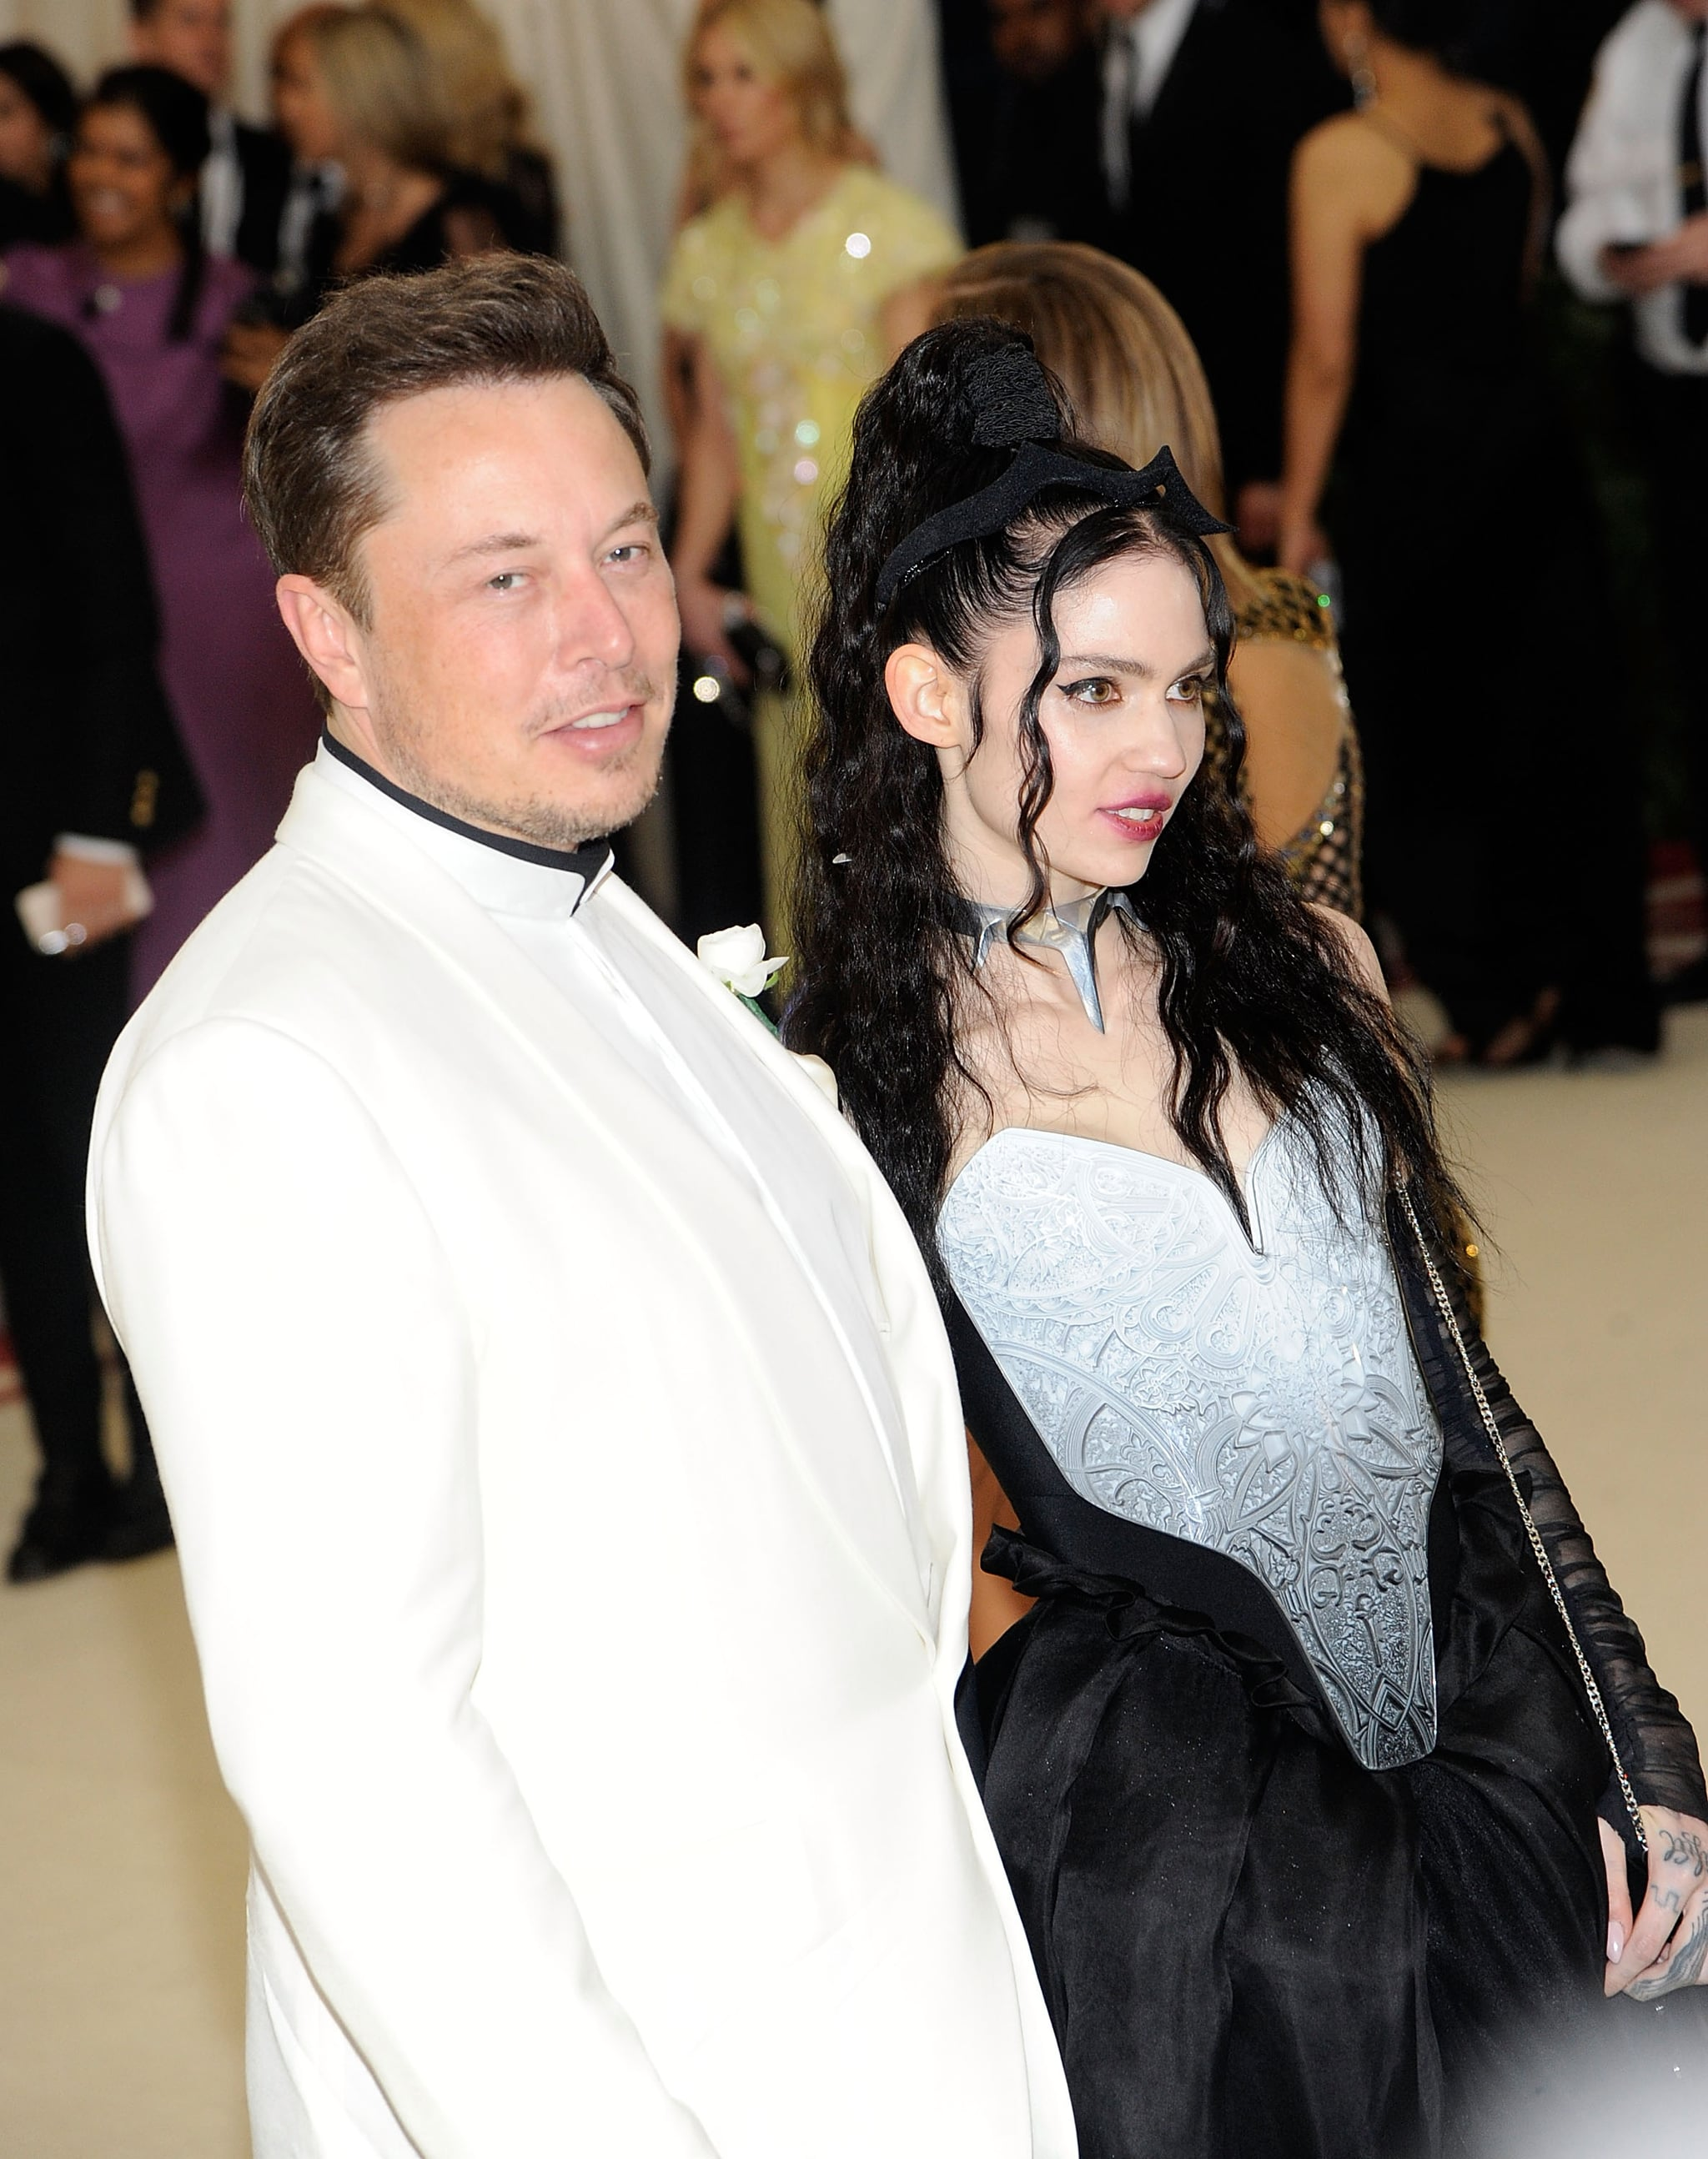 Celebrity & Entertainment | Elon Musk Hits the Met Gala With Grimes